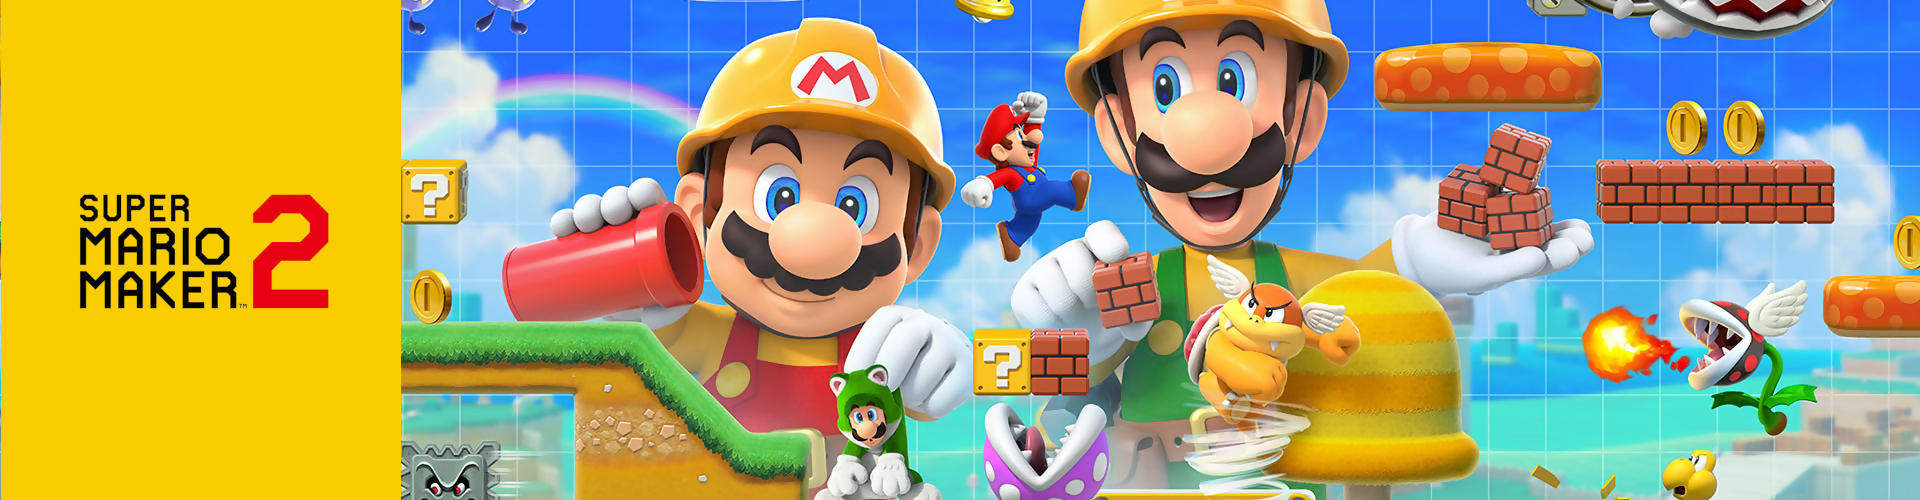 Check out all the Super Mario Maker 2 reviews